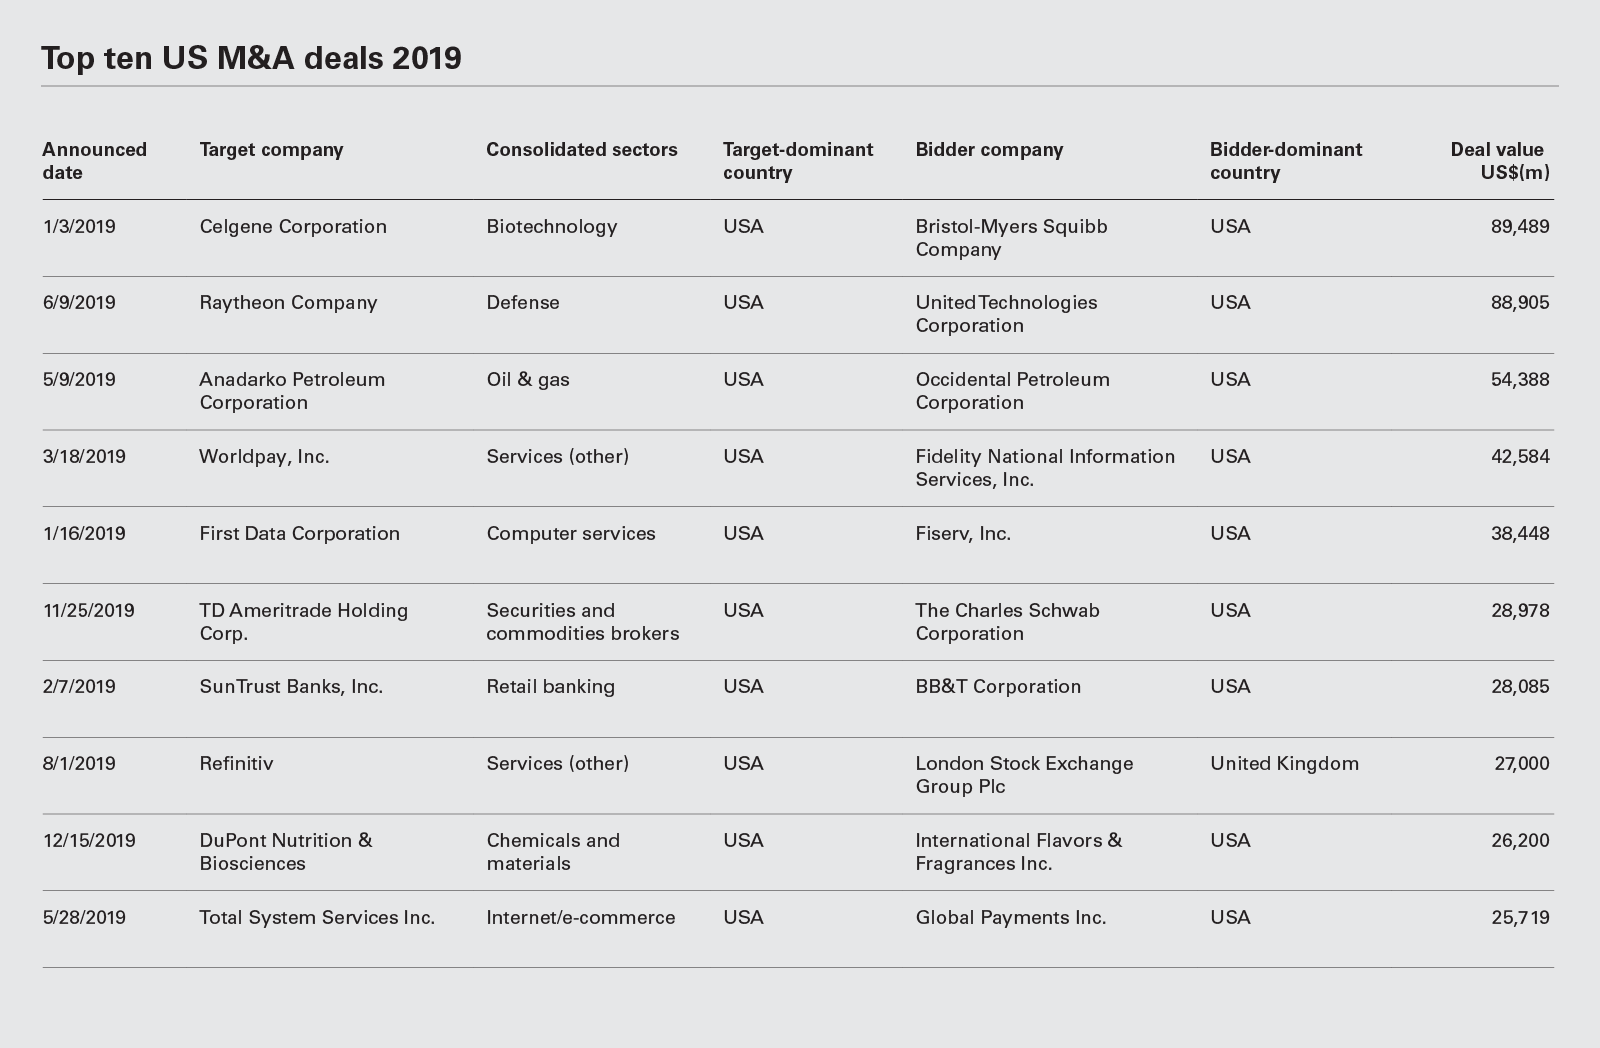 Top ten US M&A deals 2019